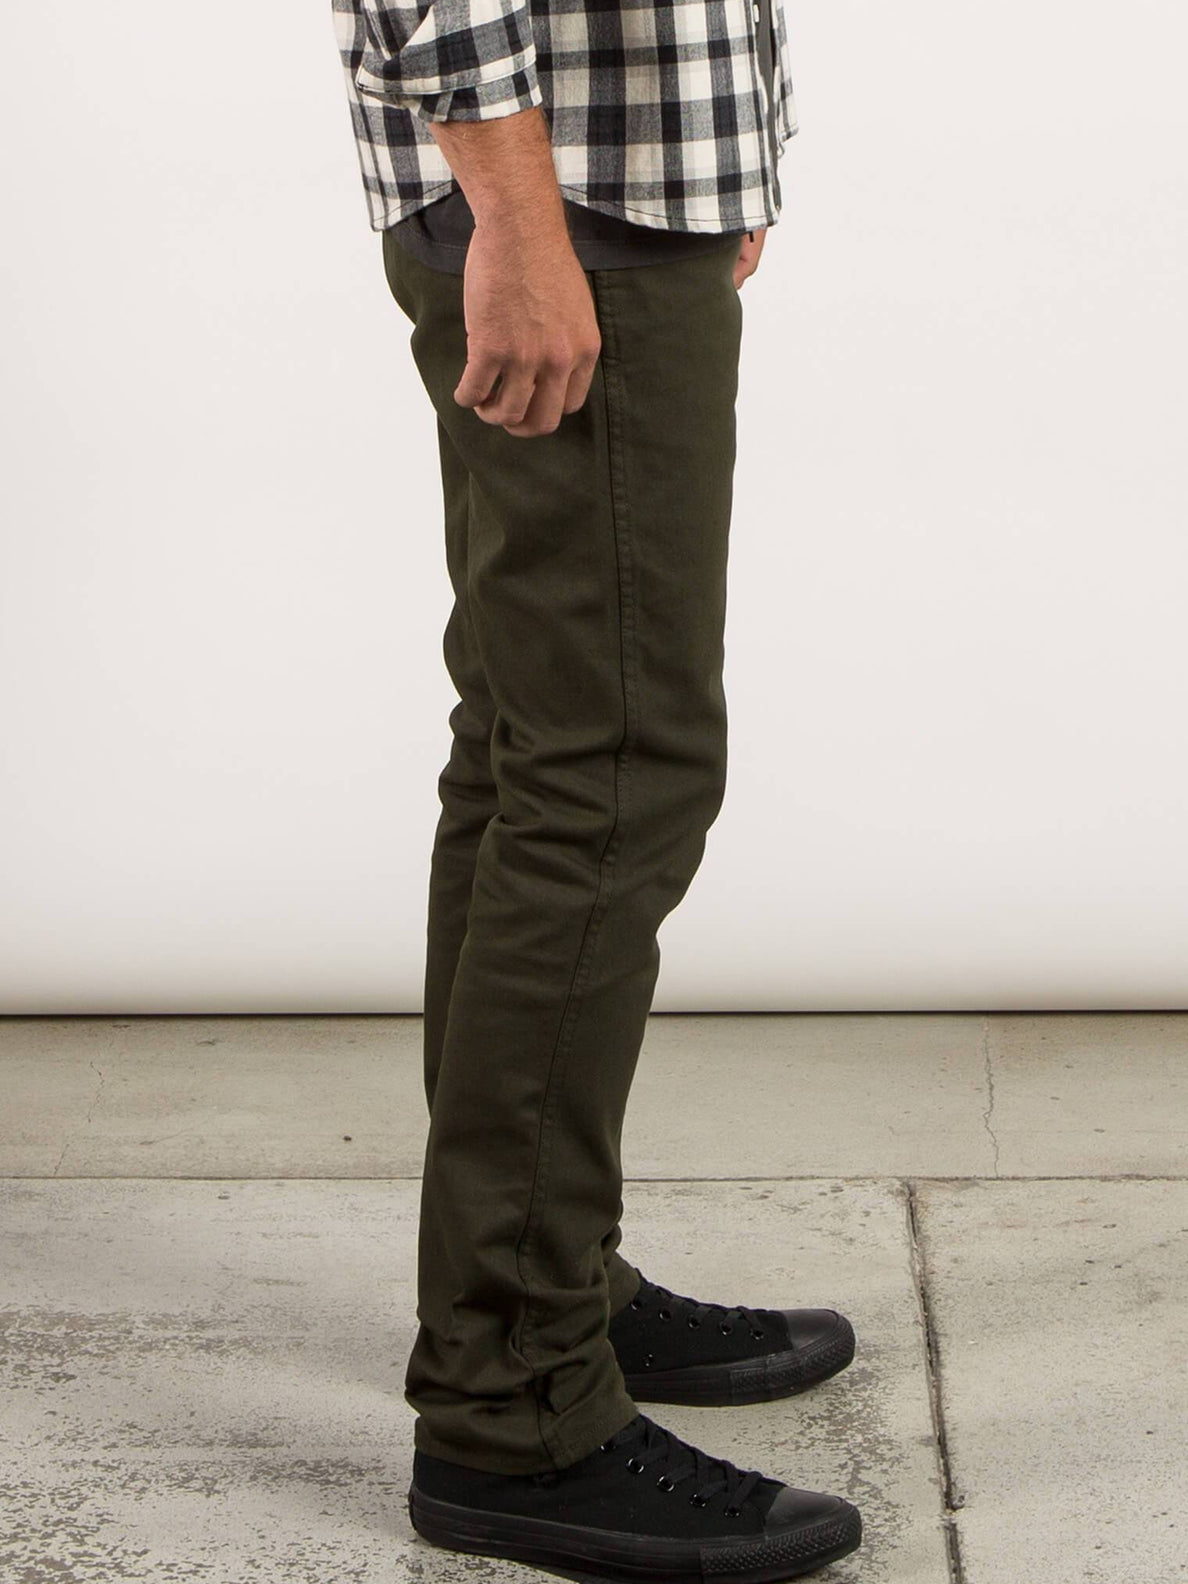 VSm Gritter Slim Chino Pants - Dark Green